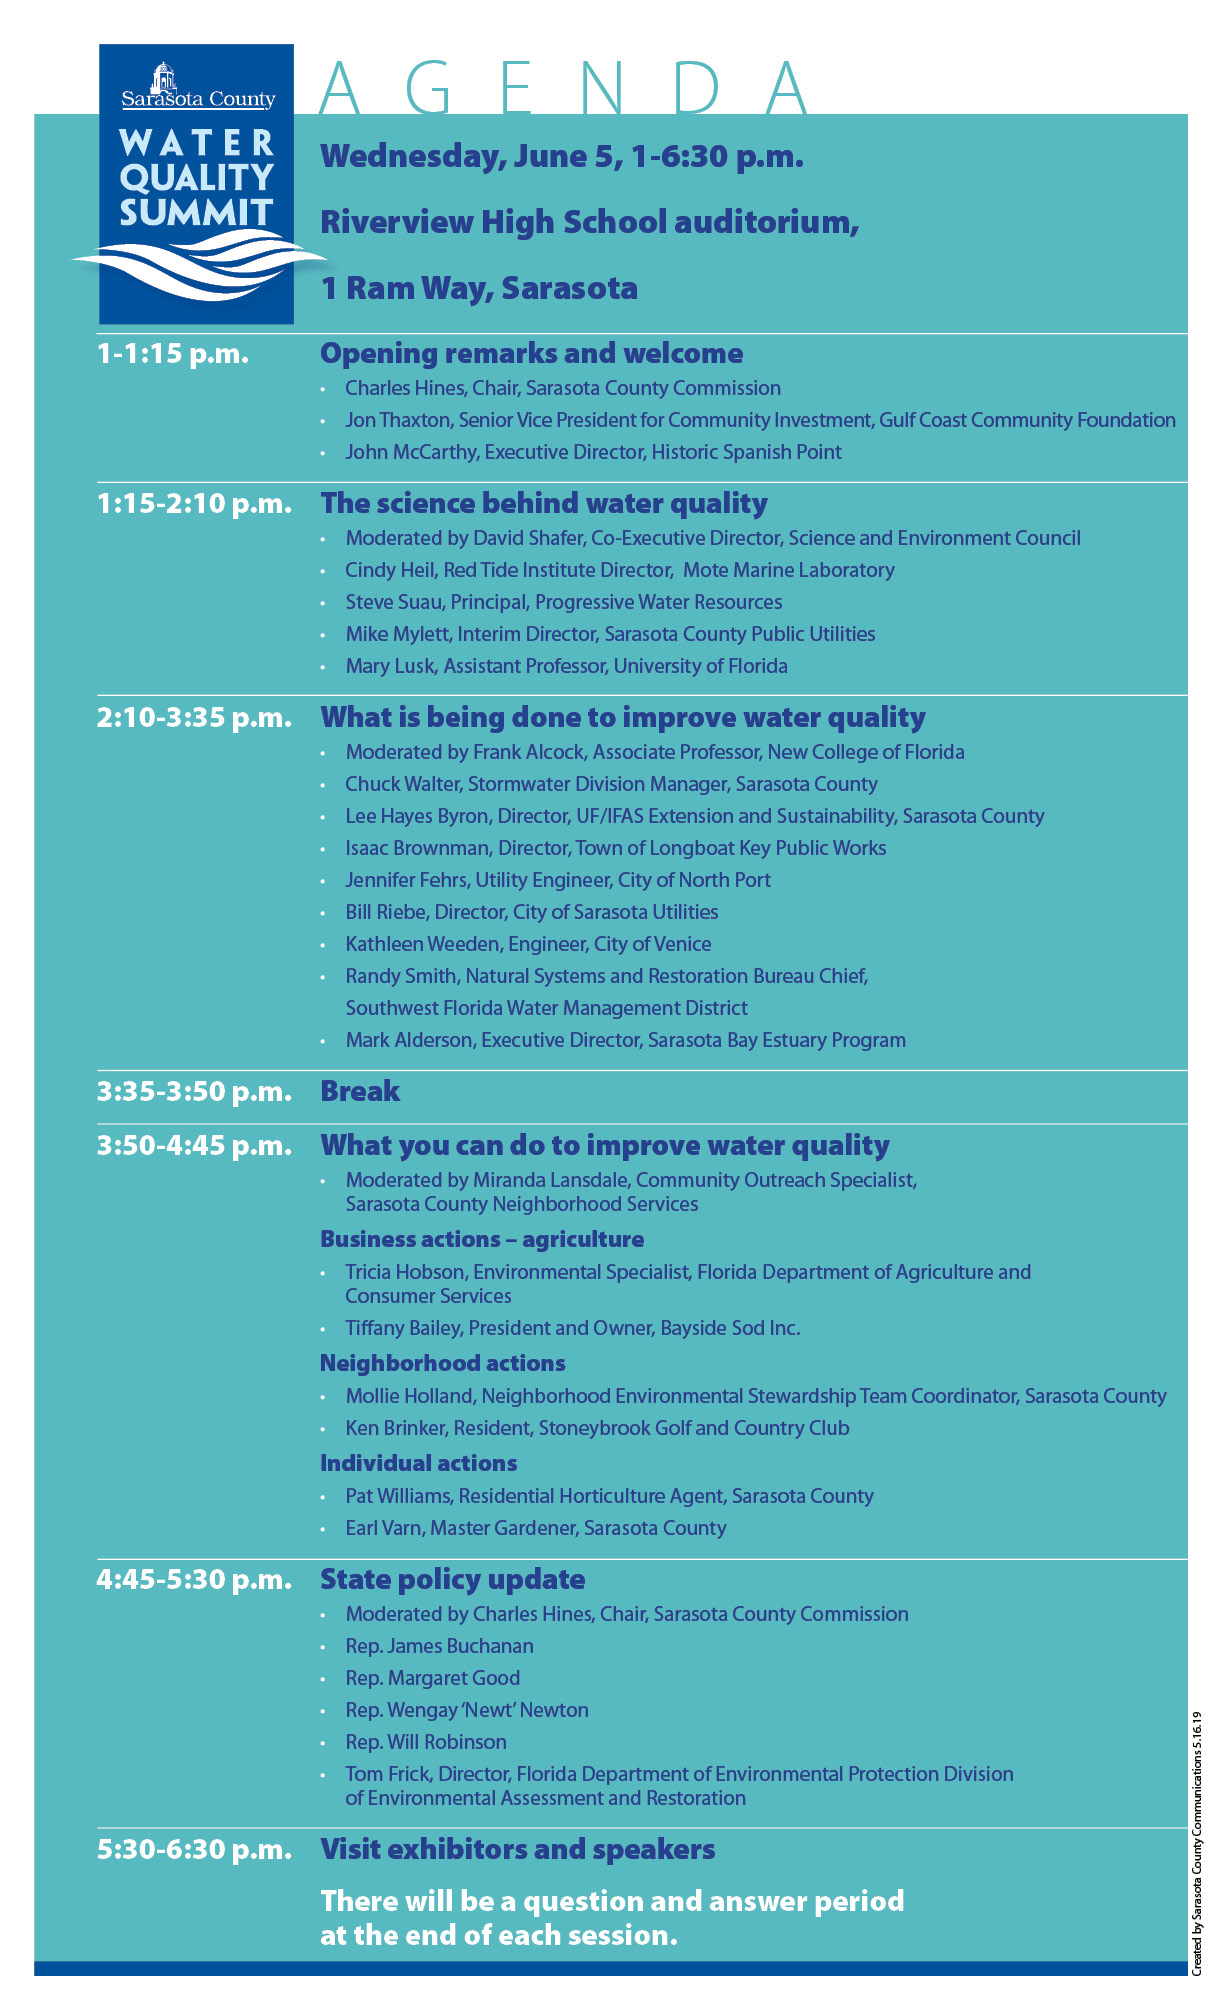 Water Quality Summit Agenda